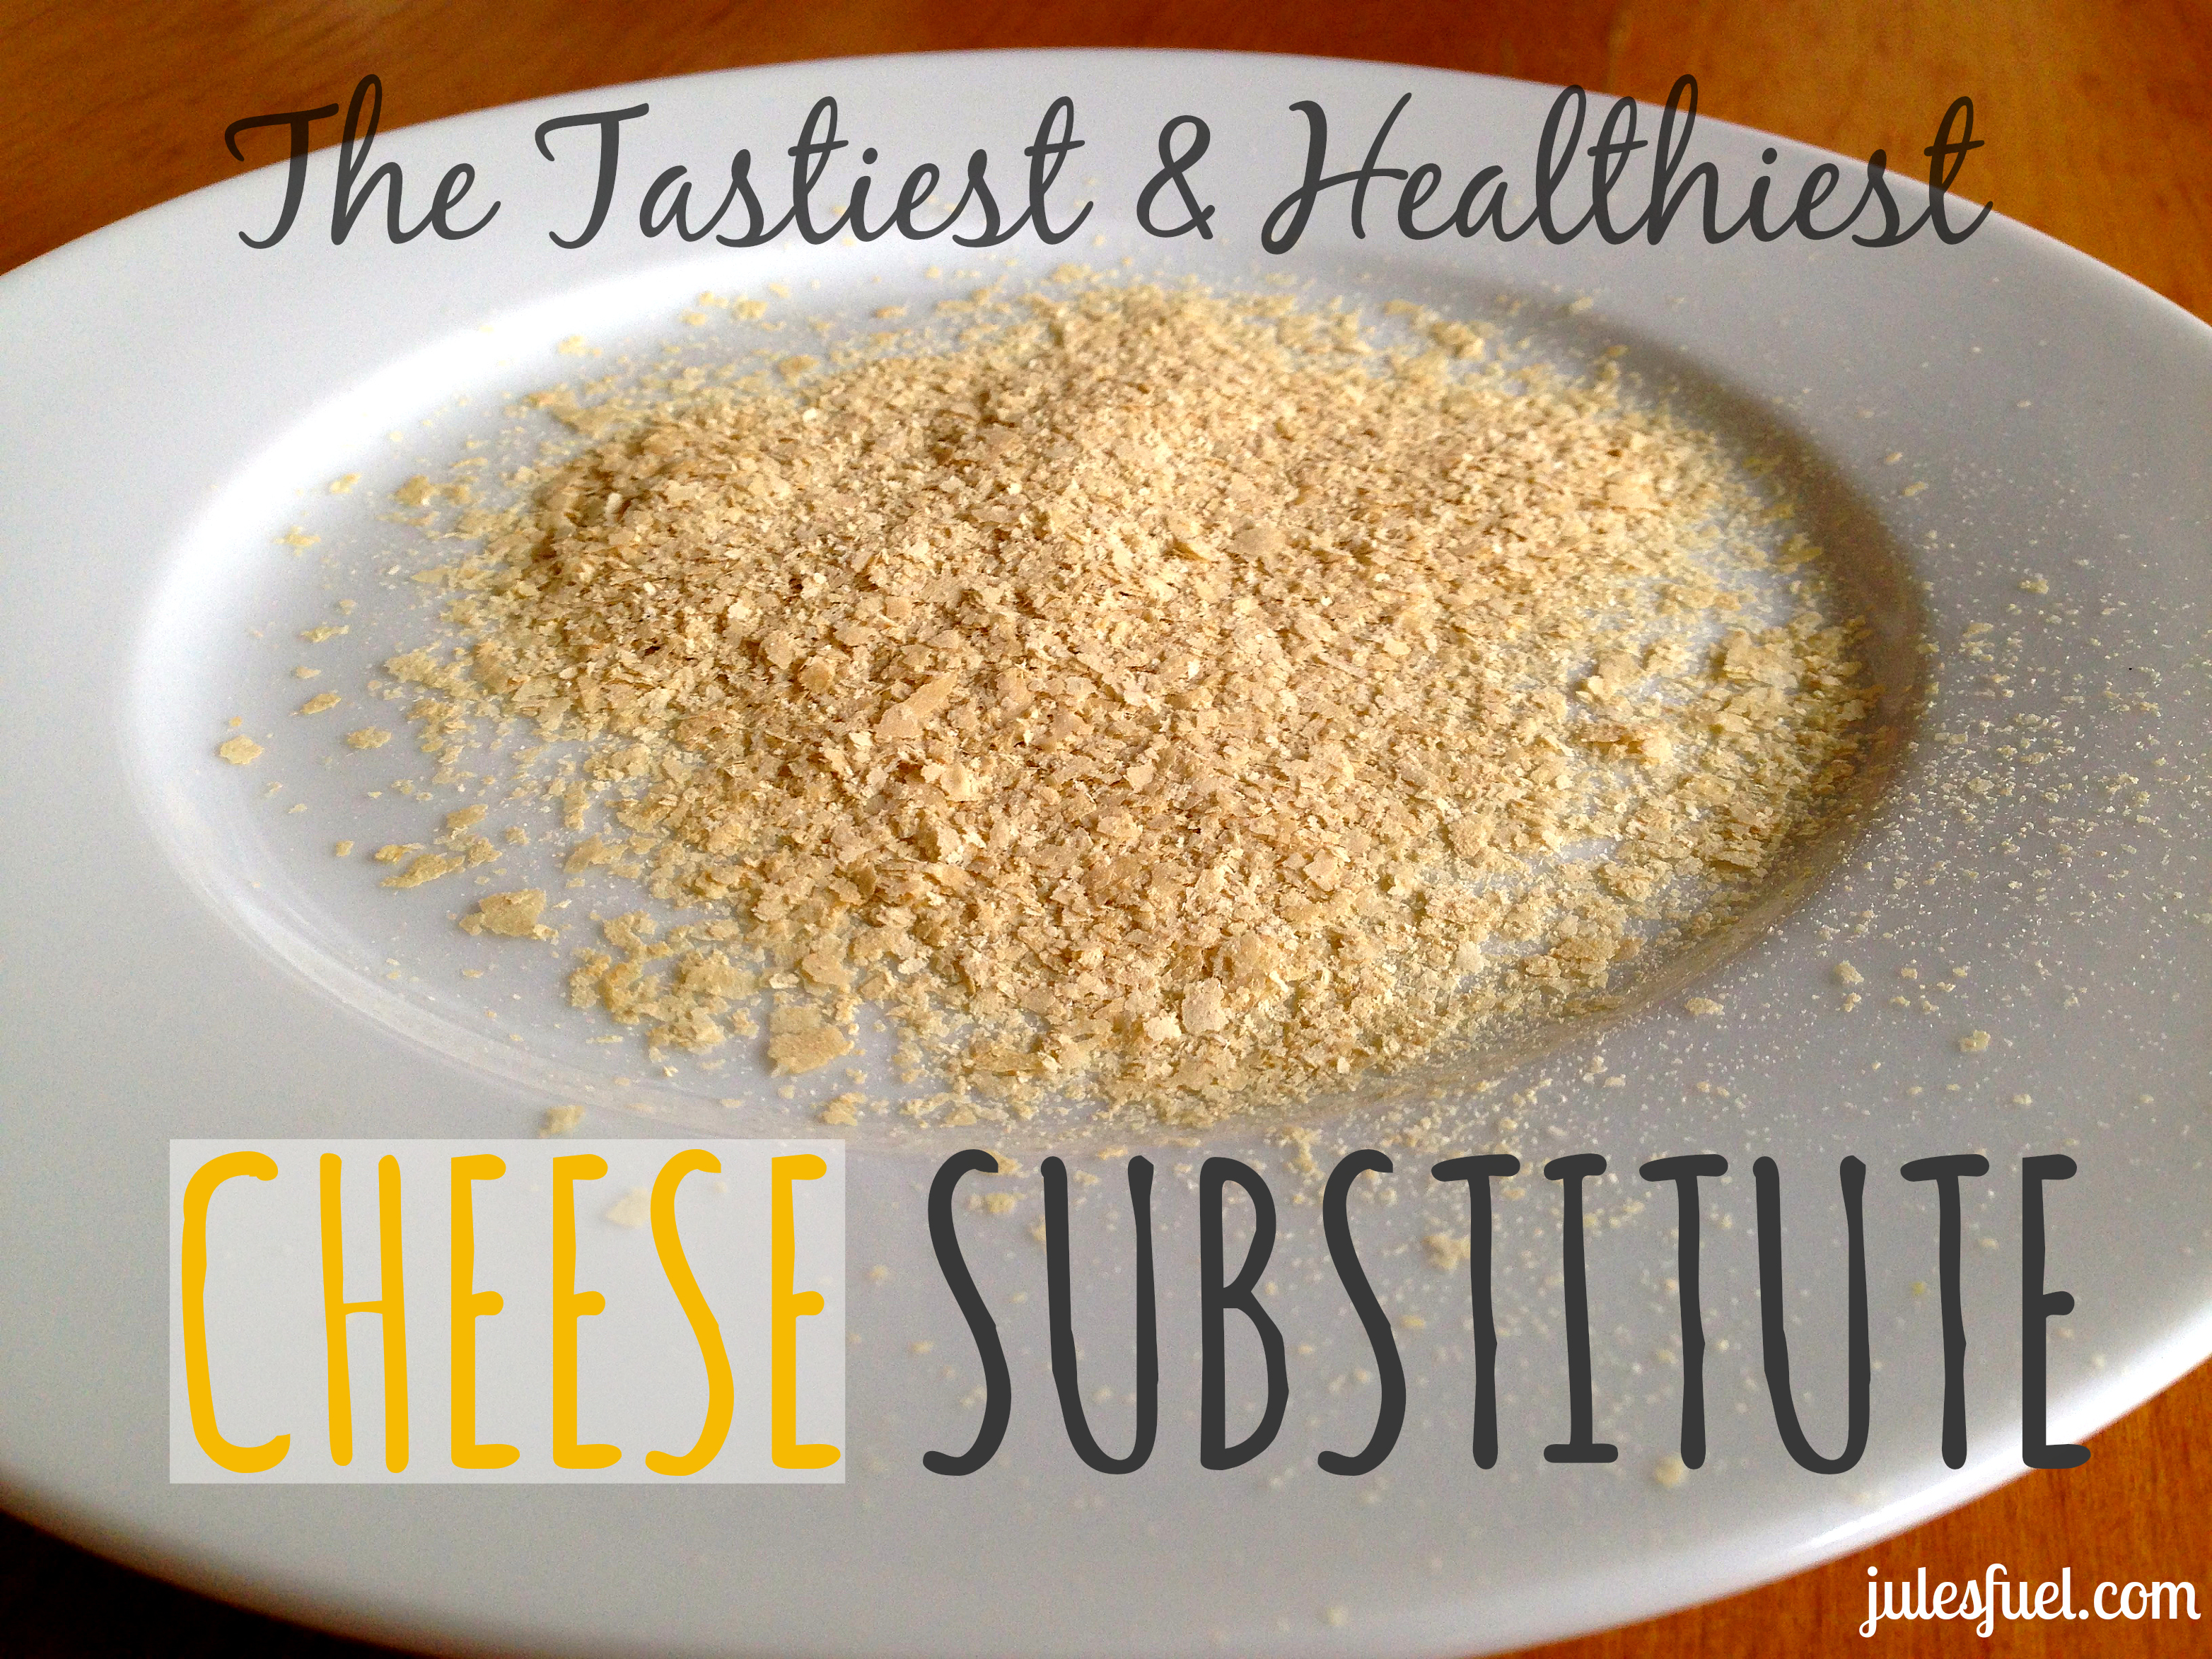 cheese substitue